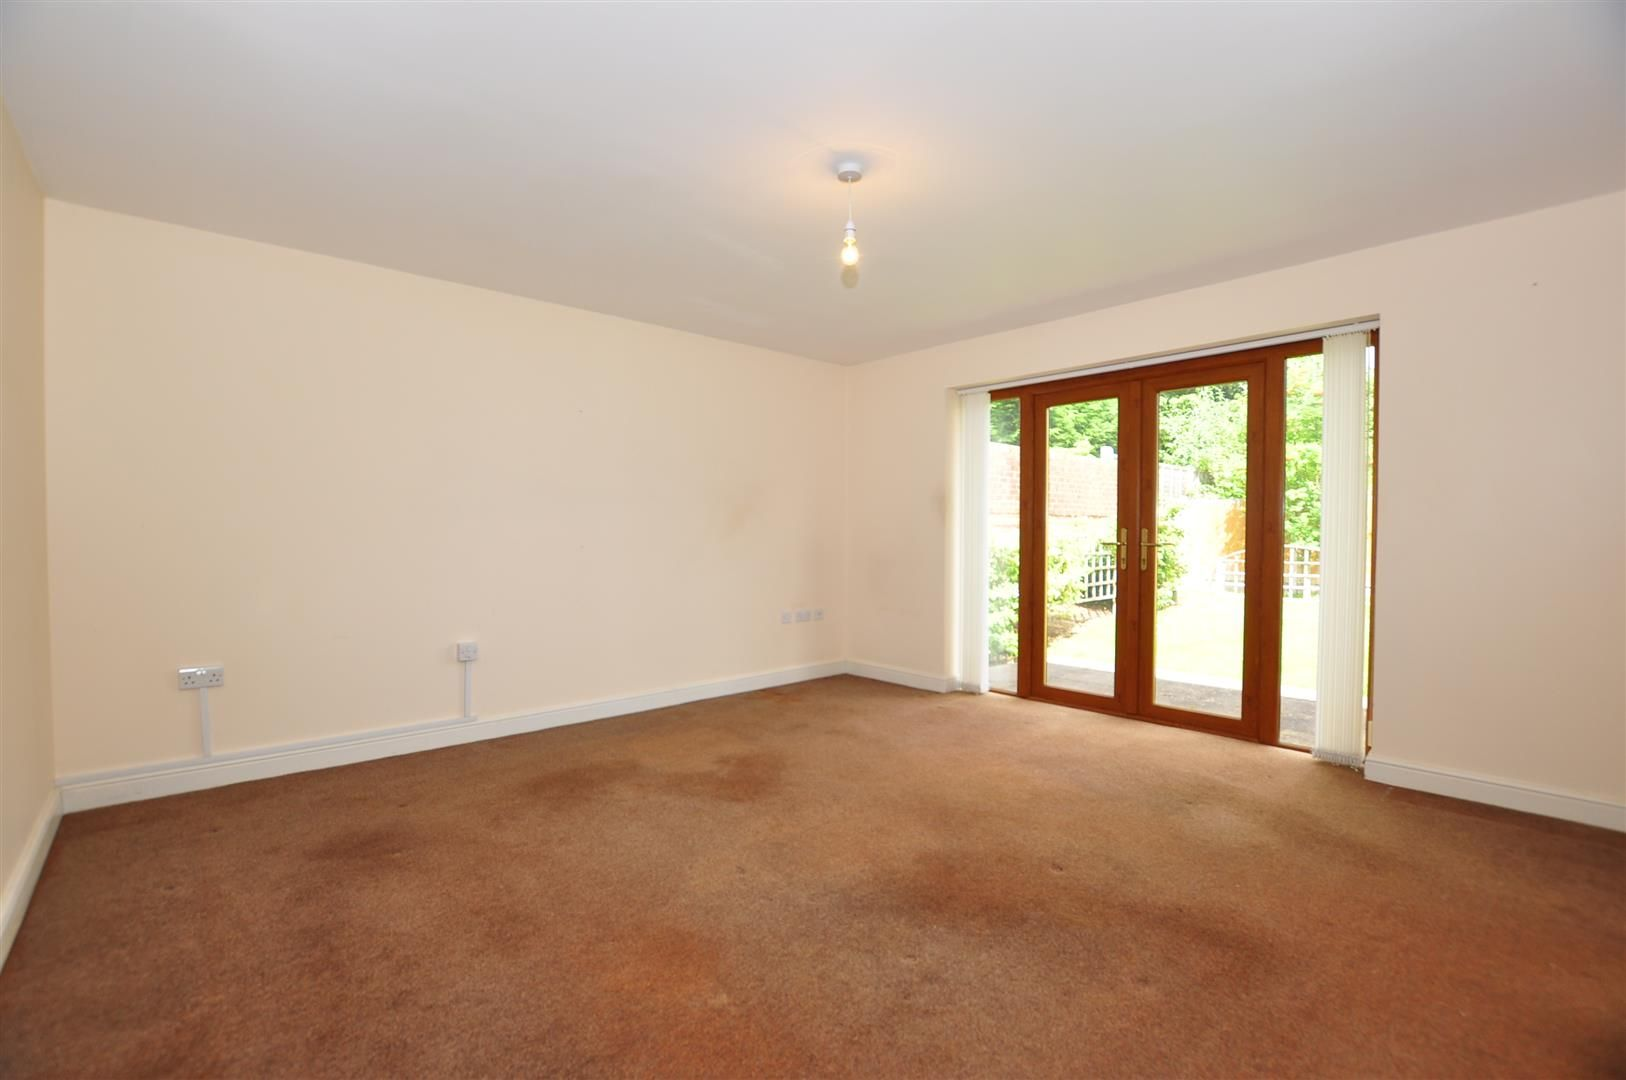 2 bed detached-bungalow for sale  - Property Image 3